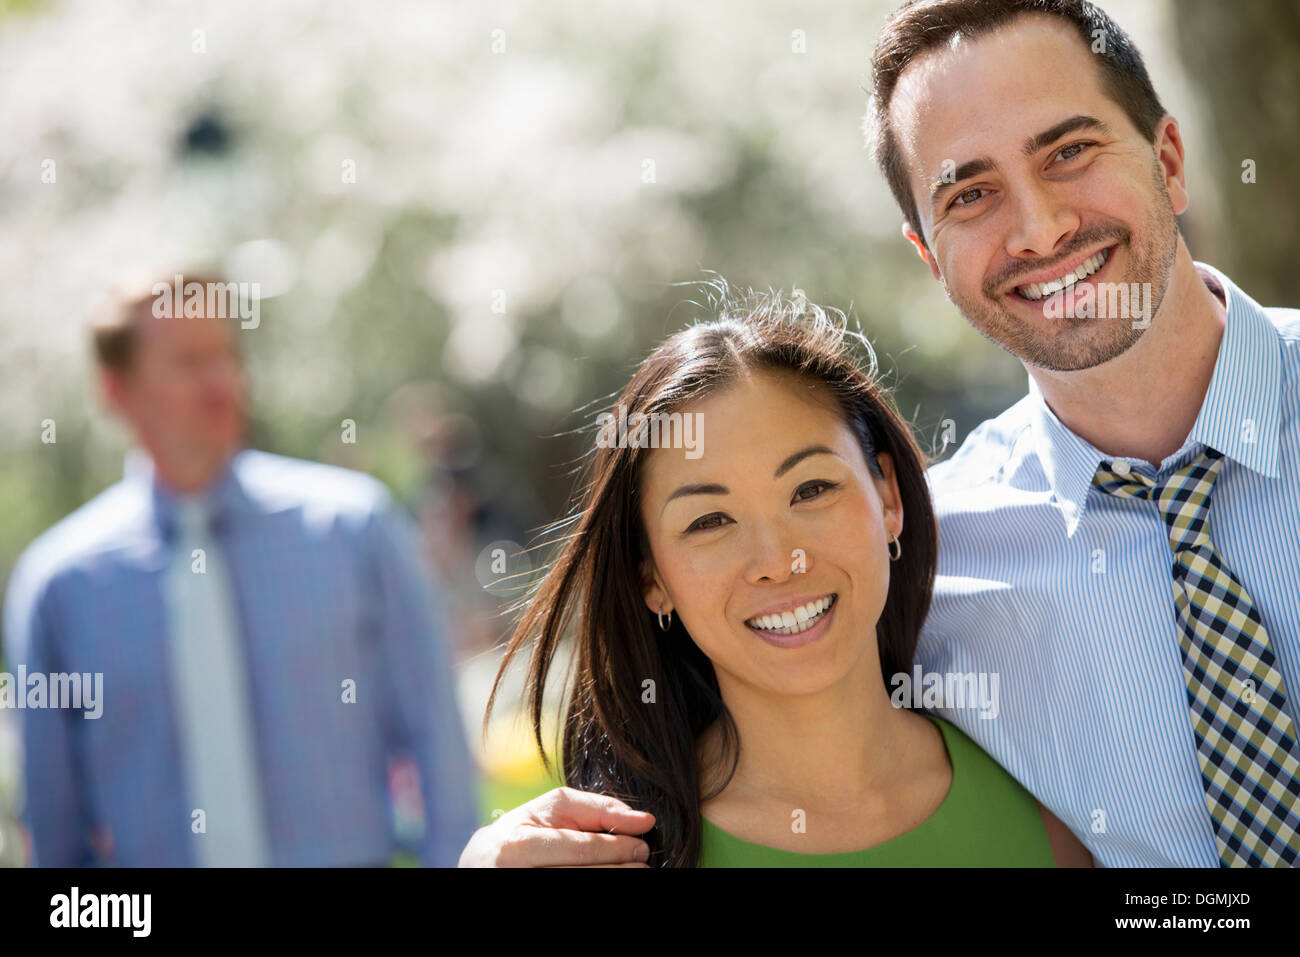 Three people in business dress. A couple side by side smiling at the camera. A man in the background. - Stock Image